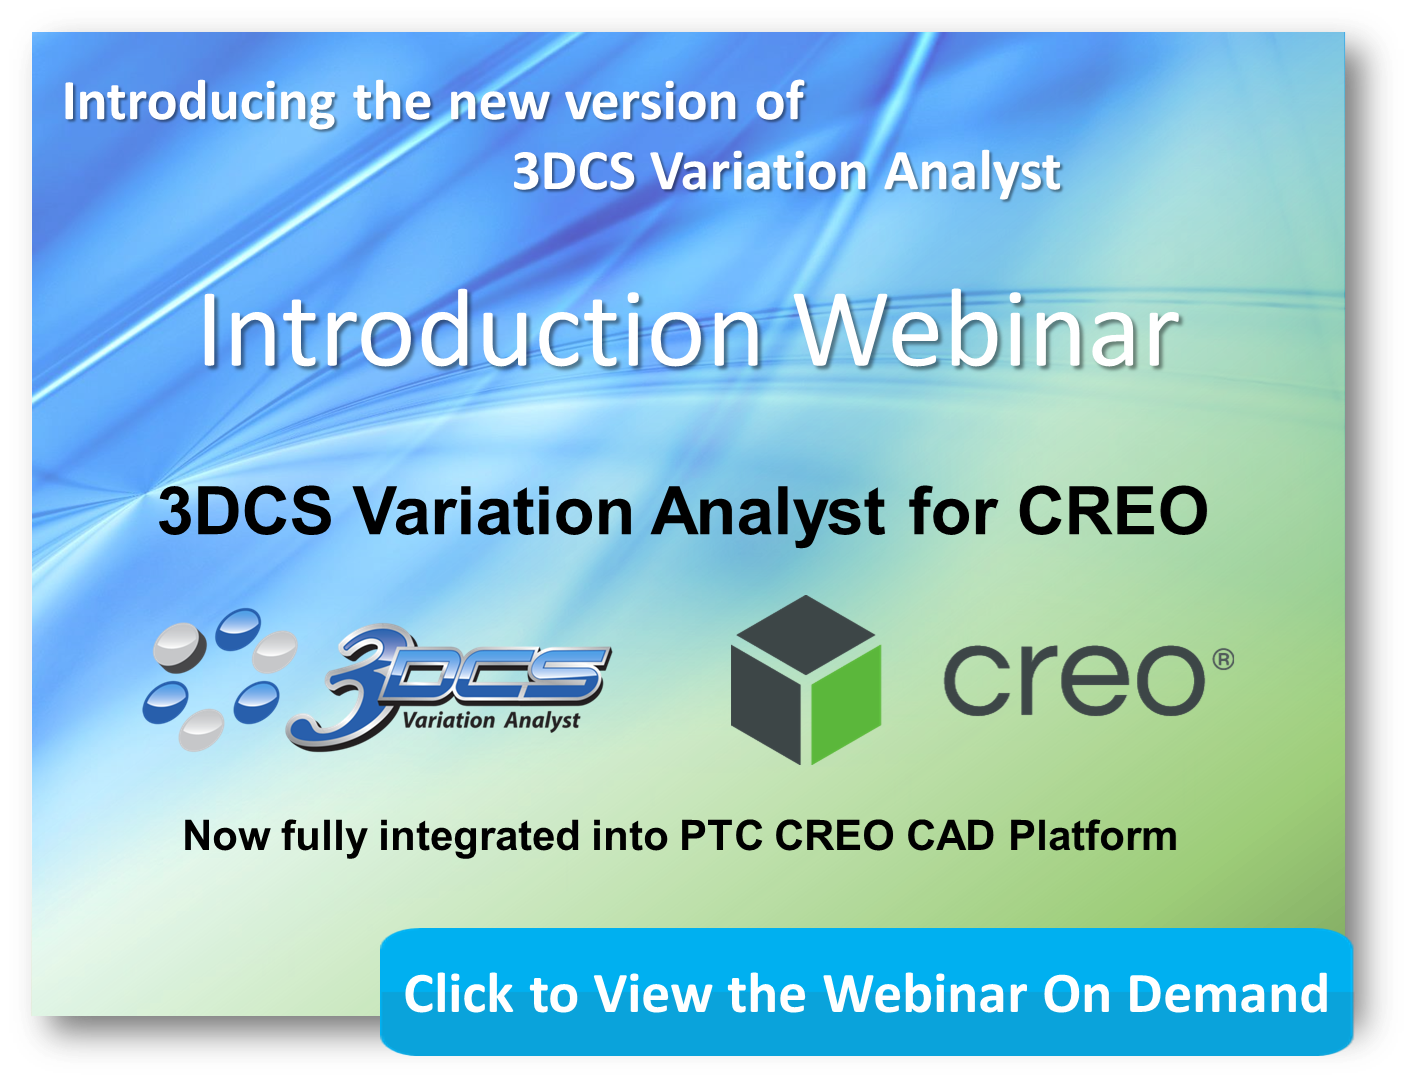 3dcs-for-creo-webinar-on-demand-sq.png